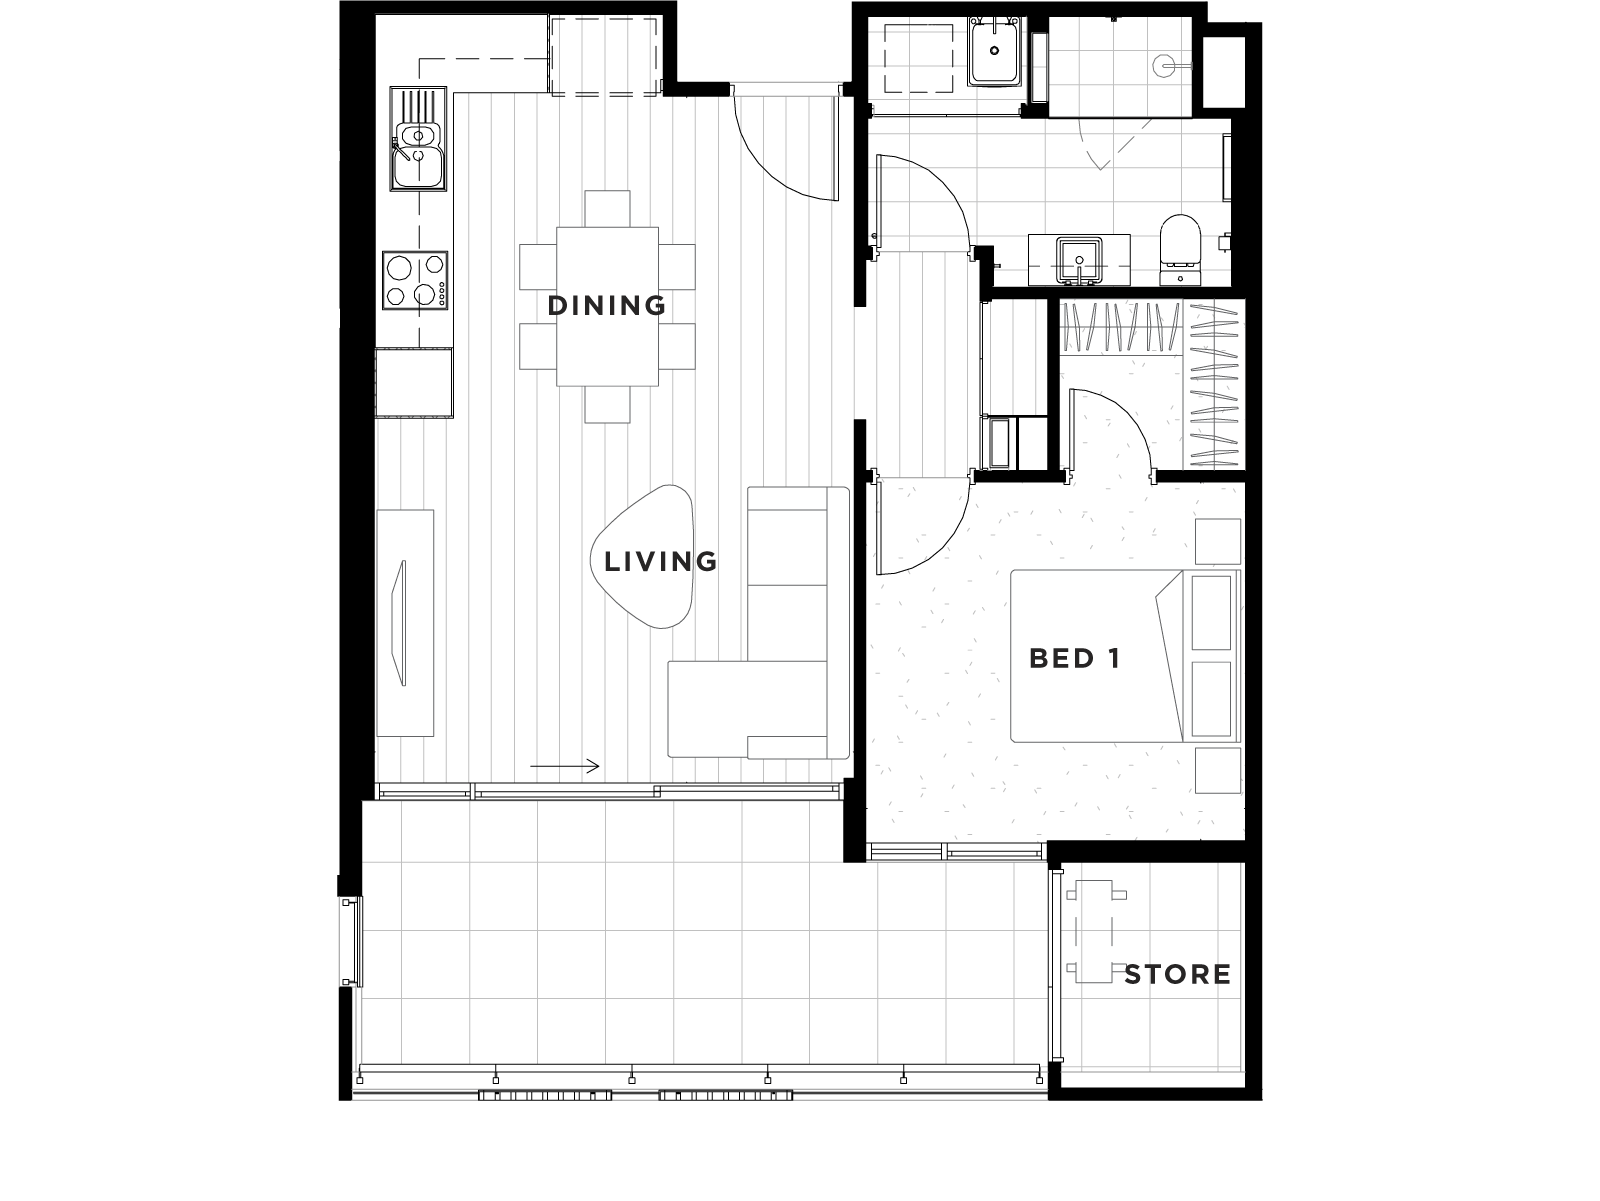 Apartment 45 Floorplan